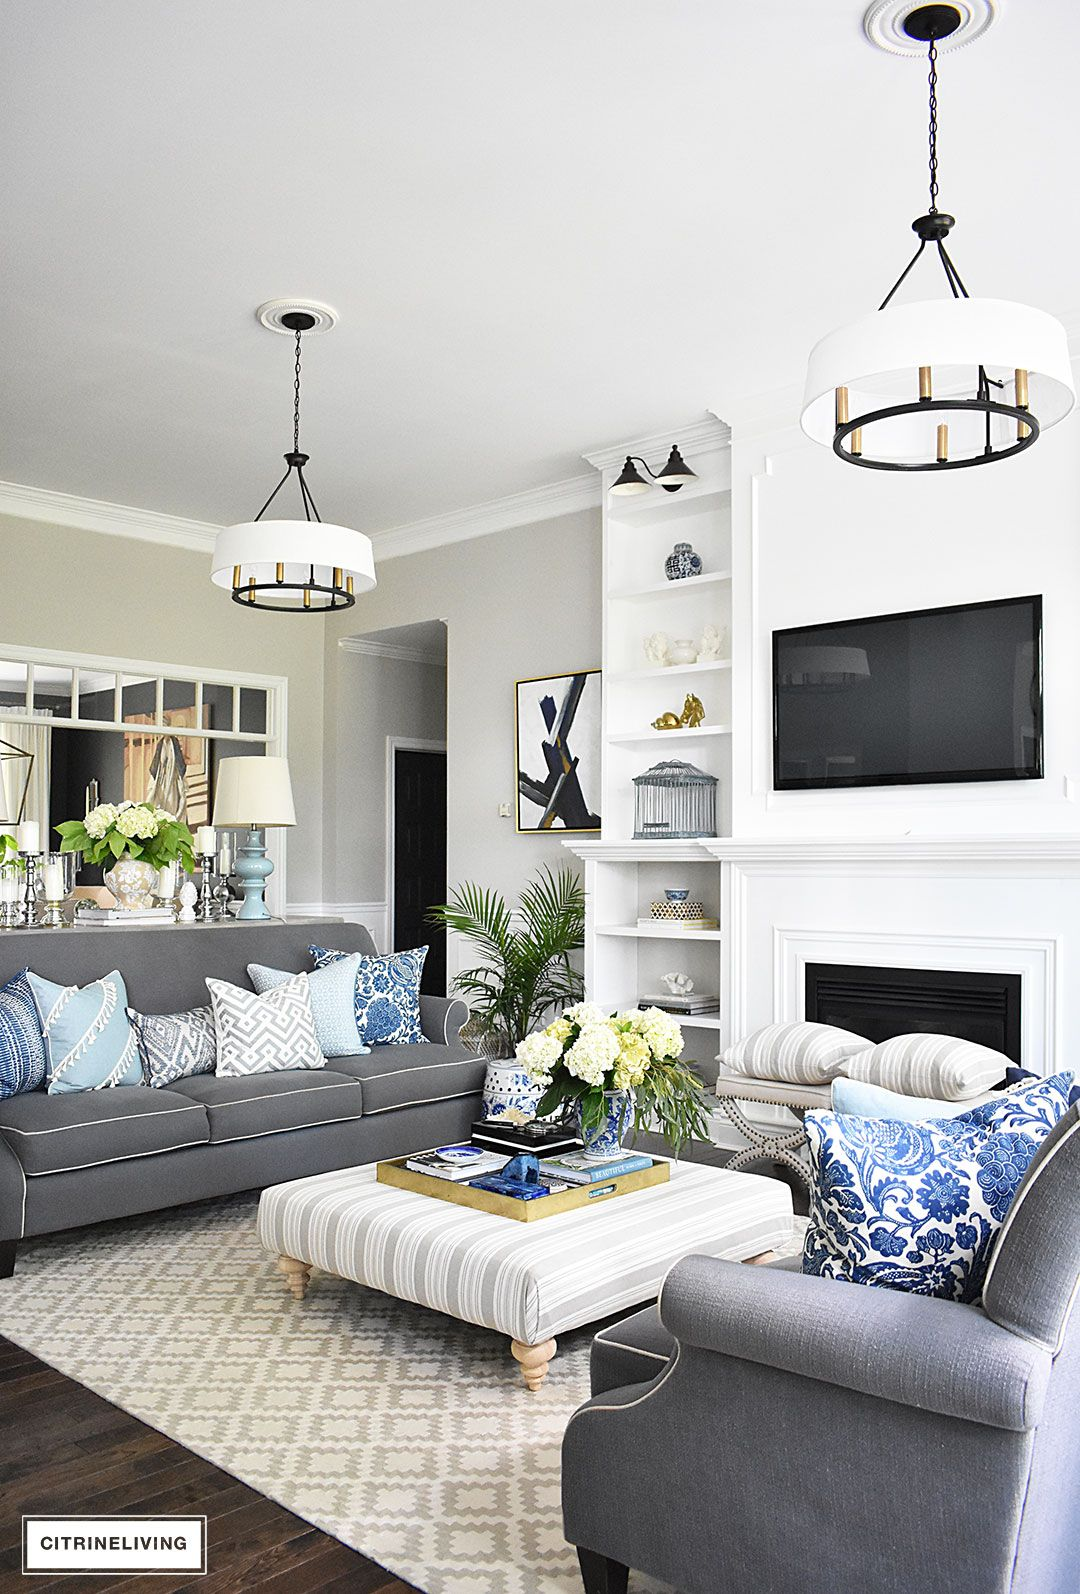 Design For Living Room With Open Kitchen: 20+ Fresh Ideas For Decorating With Blue And White